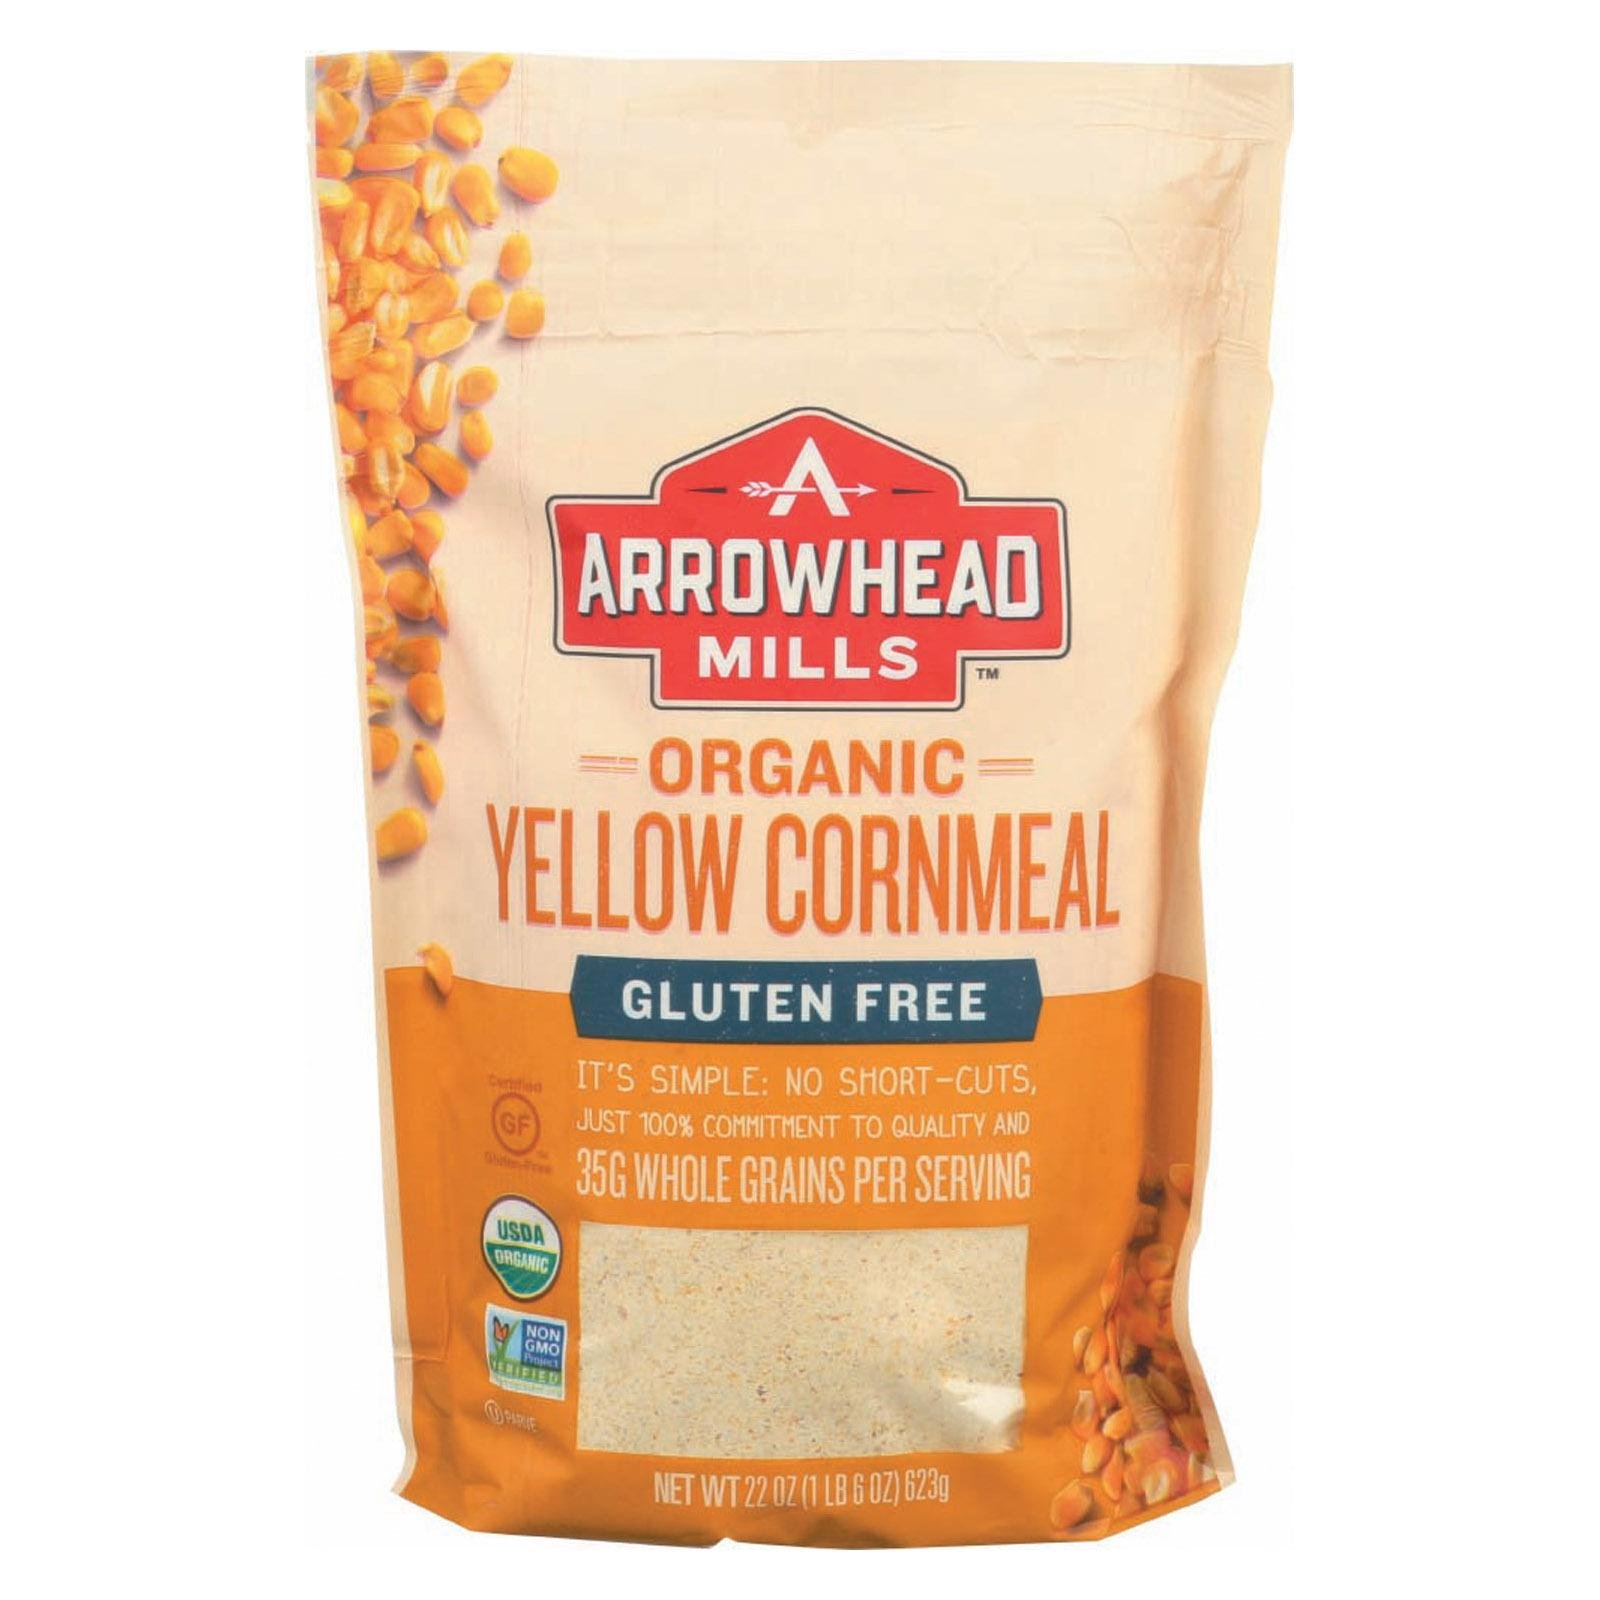 Arrowhead Mills Cornmeal Yellow Org